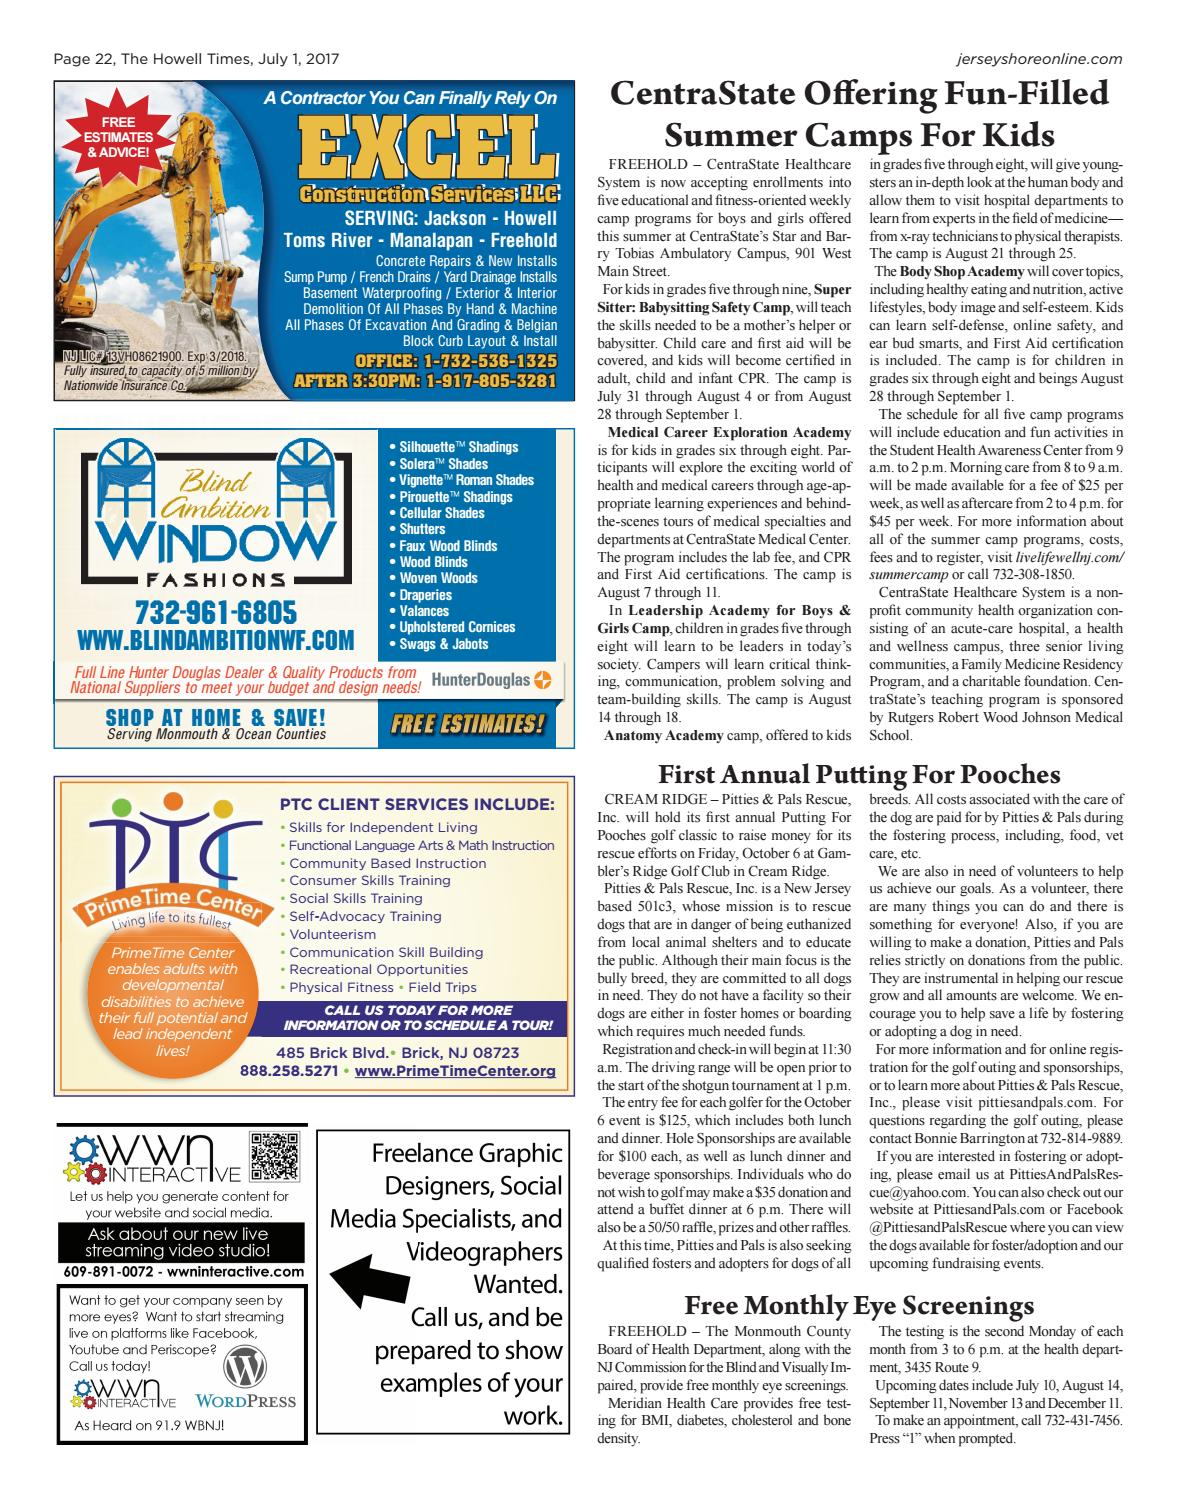 2017 07 01 The Howell Times By Micromedia Publications Jersey